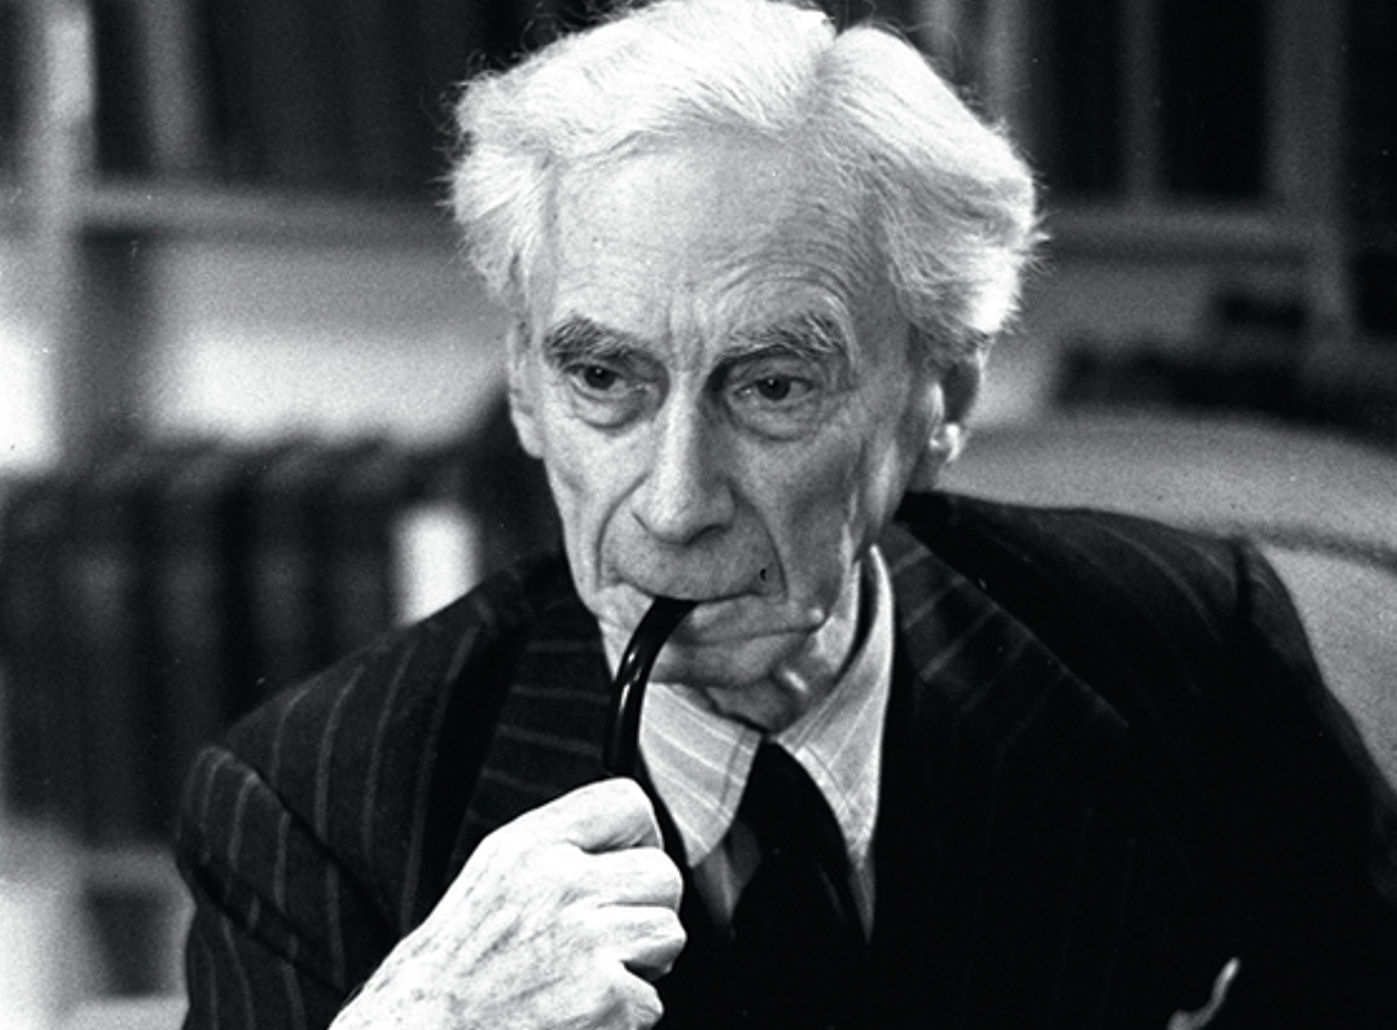 bertrand russell smoking pipe black and white | The Lonely Tribalist